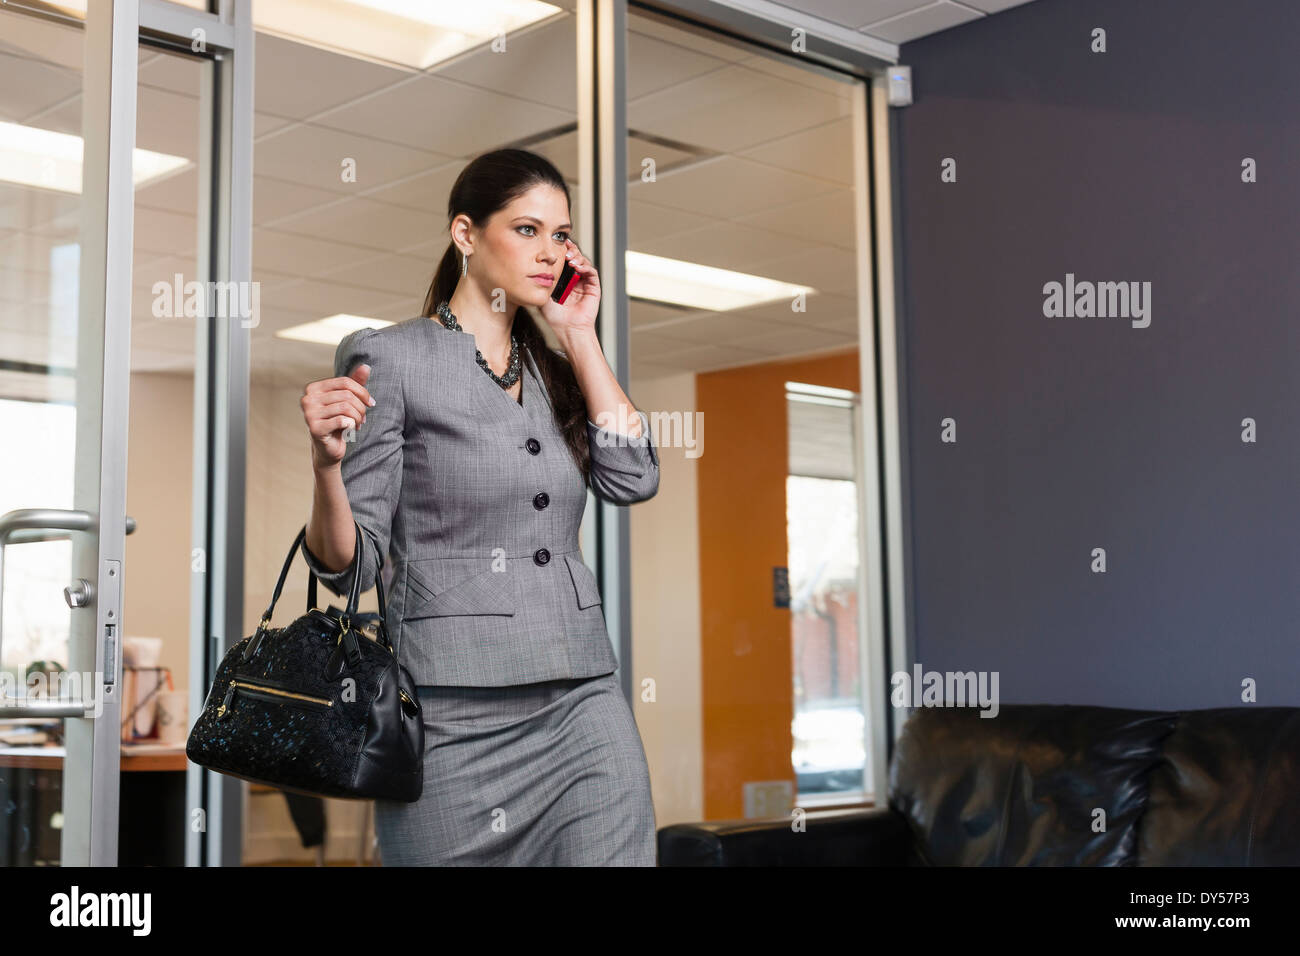 Young businesswoman leaving office, on phonecall - Stock Image